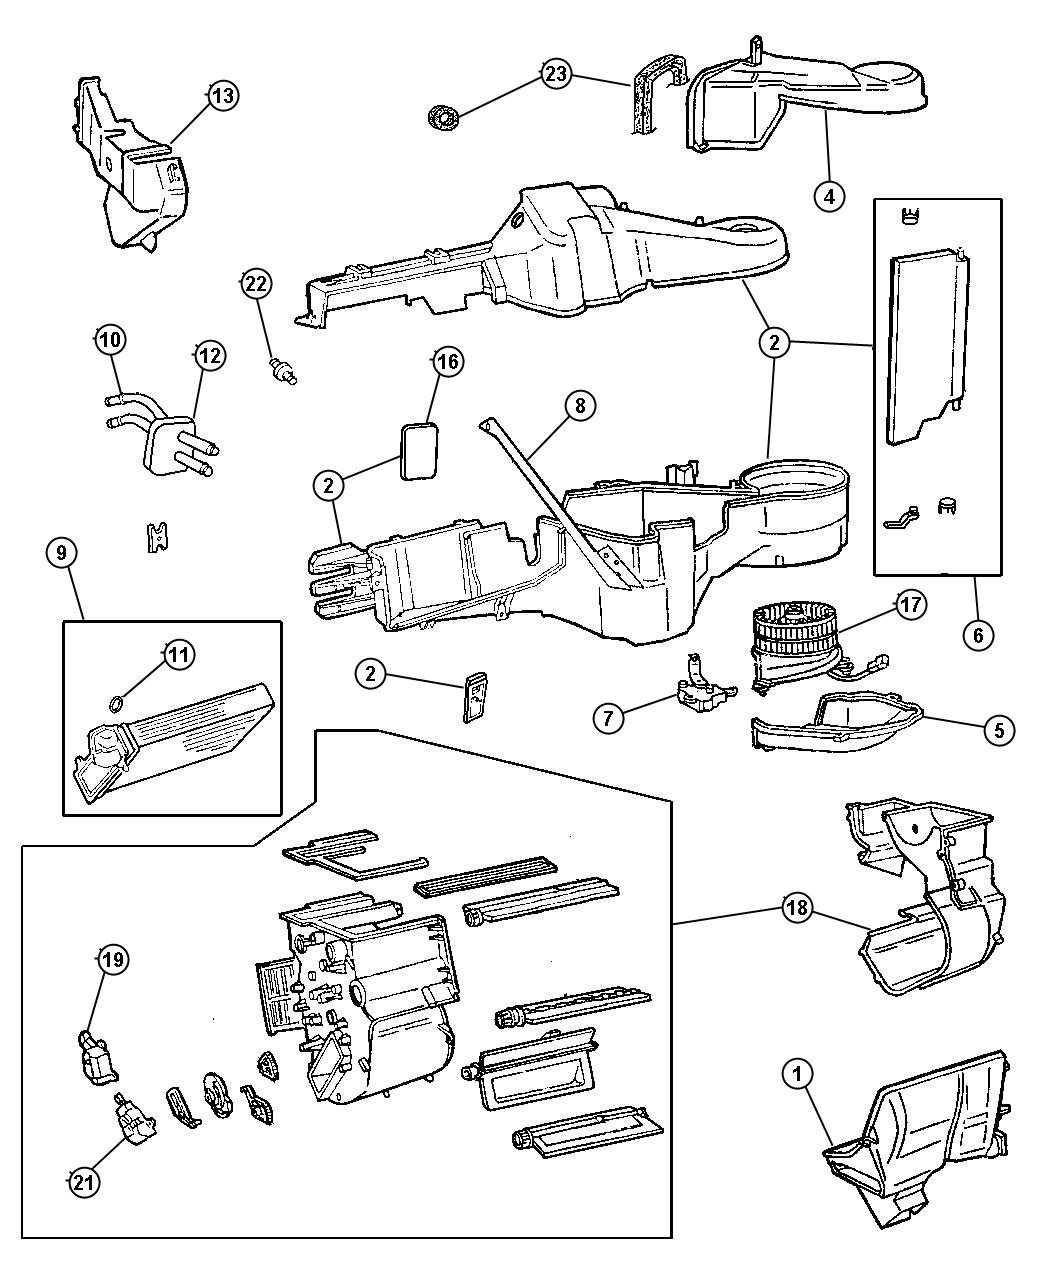 Plymouth Voyager Heater Unit